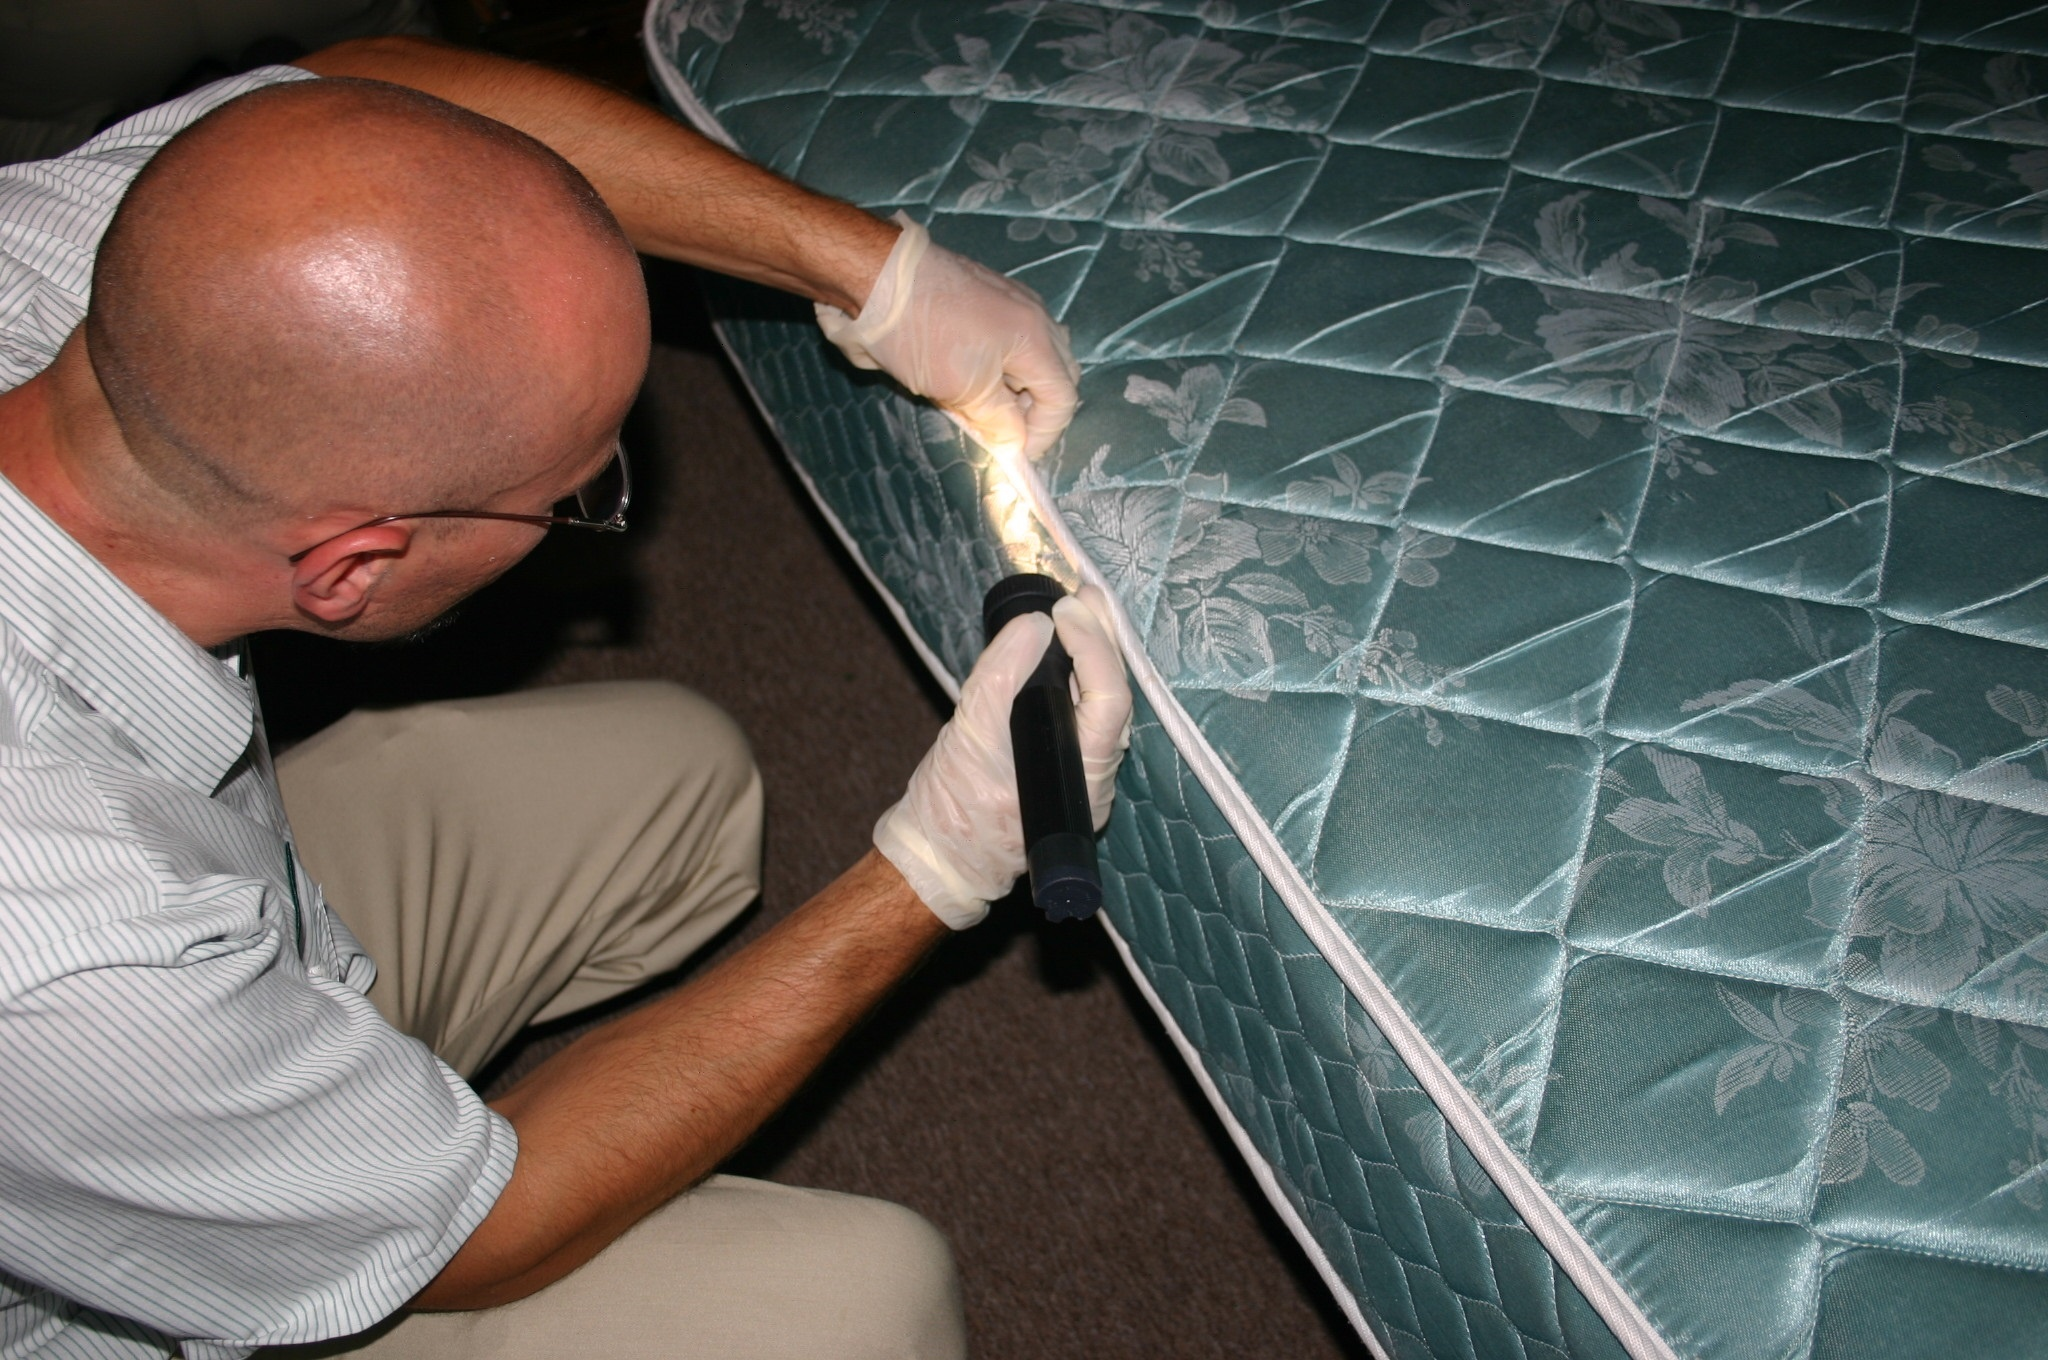 Inspection of Mattress Seam